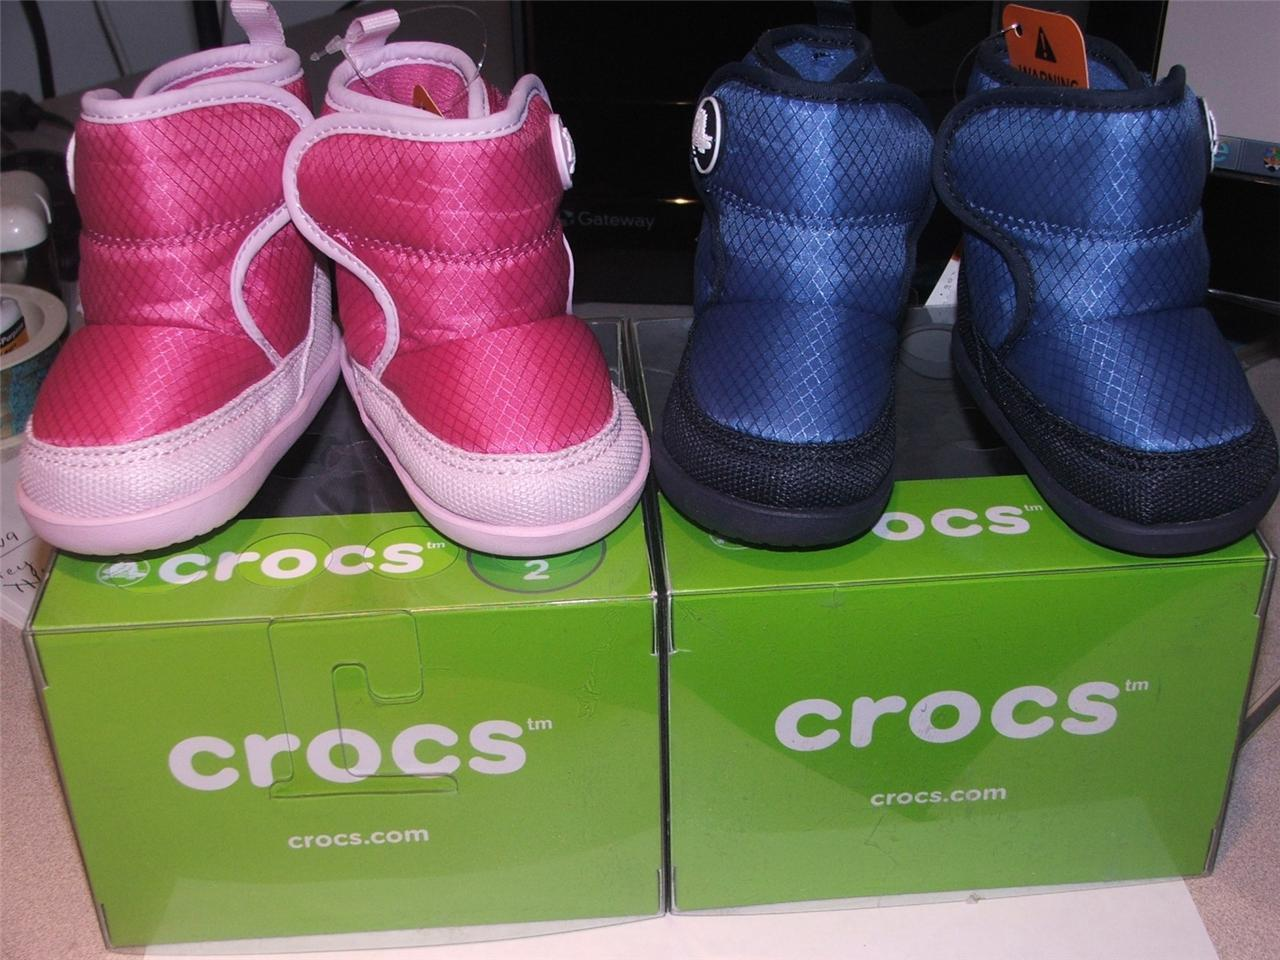 CROCS KOSMO BOOTS infant LITTLE PINK OR BLUE SZ 2 gift boxed Baby Booties